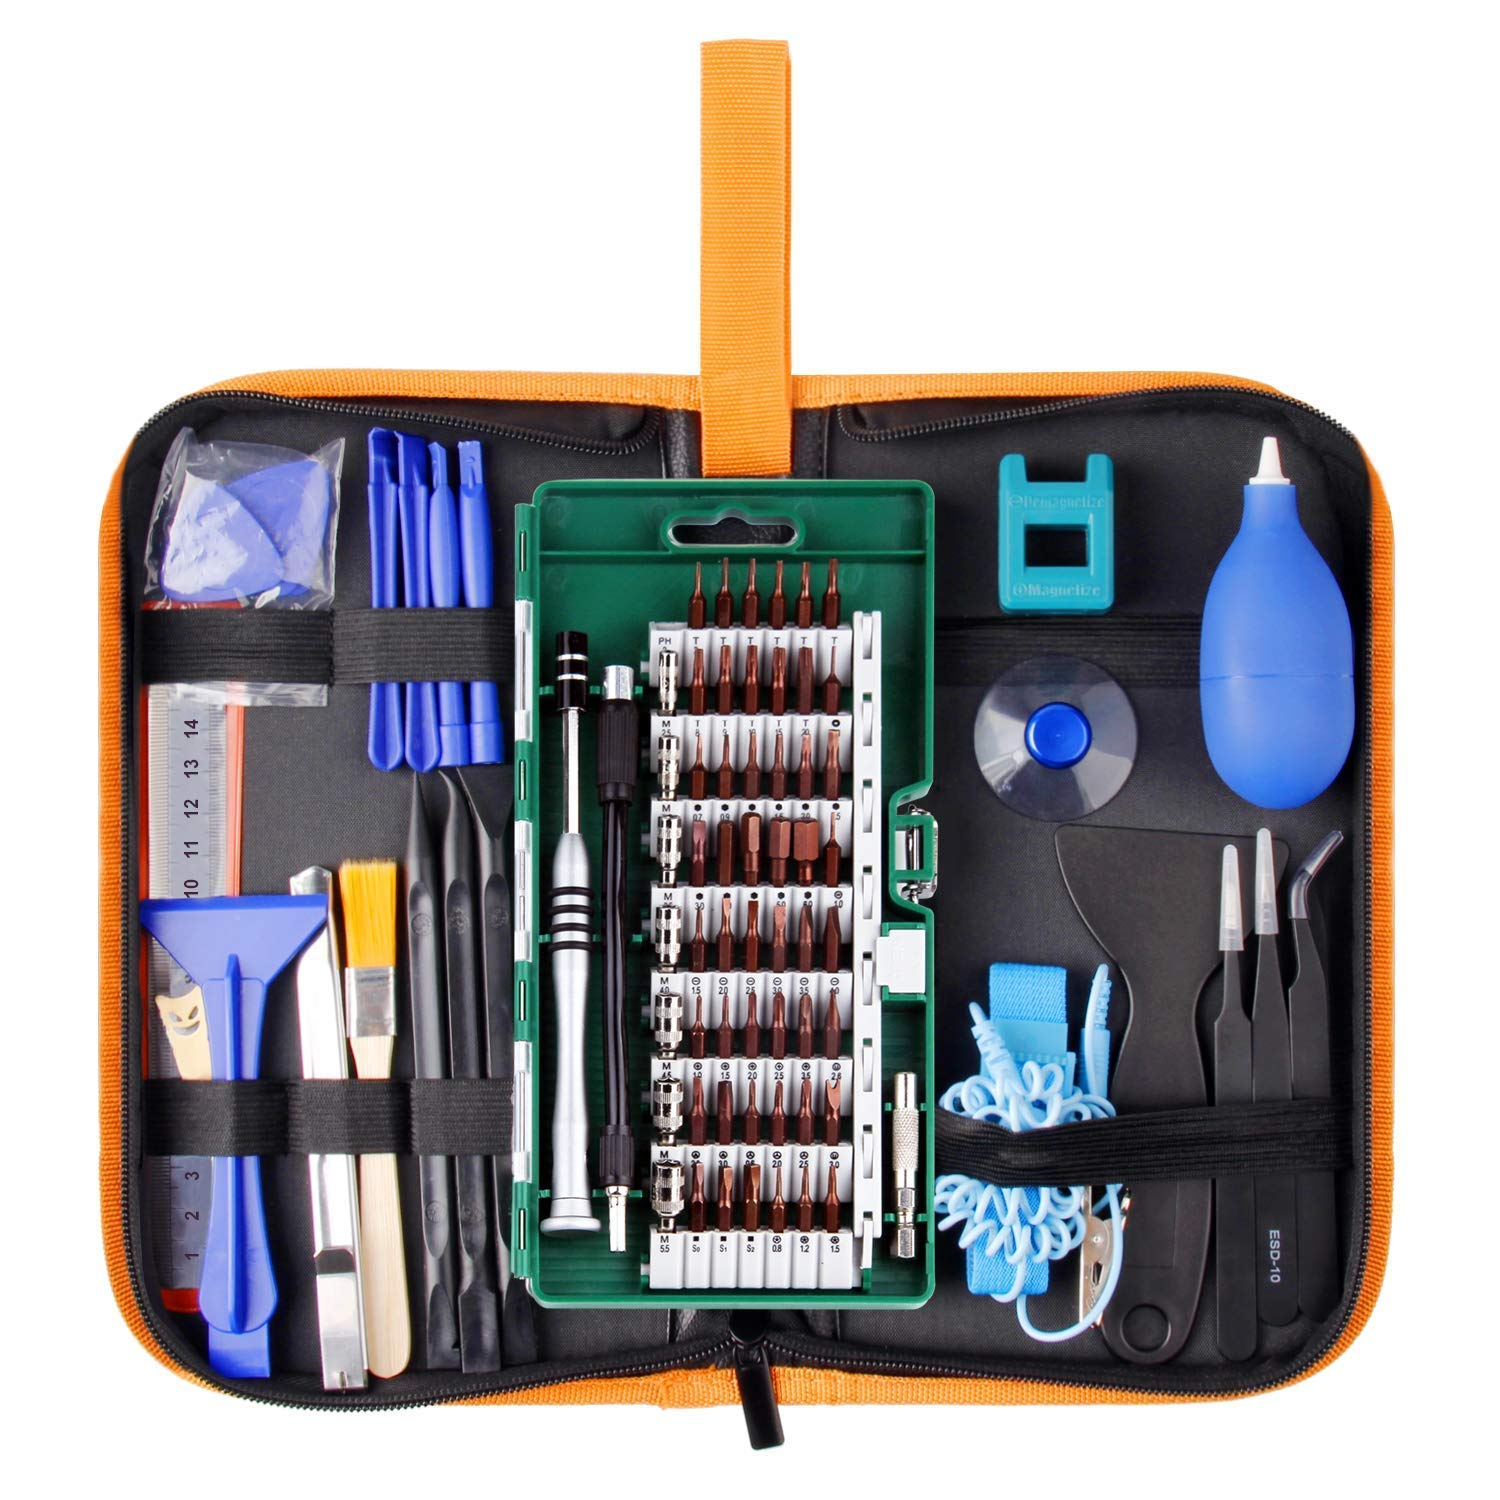 WOWGO Precision Screwdriver Set with Magnetic Driver Kit, 85 in 1 Cell Phone Repair Tool Kit Portable Bag for iPad, PC, Laptop,Watch